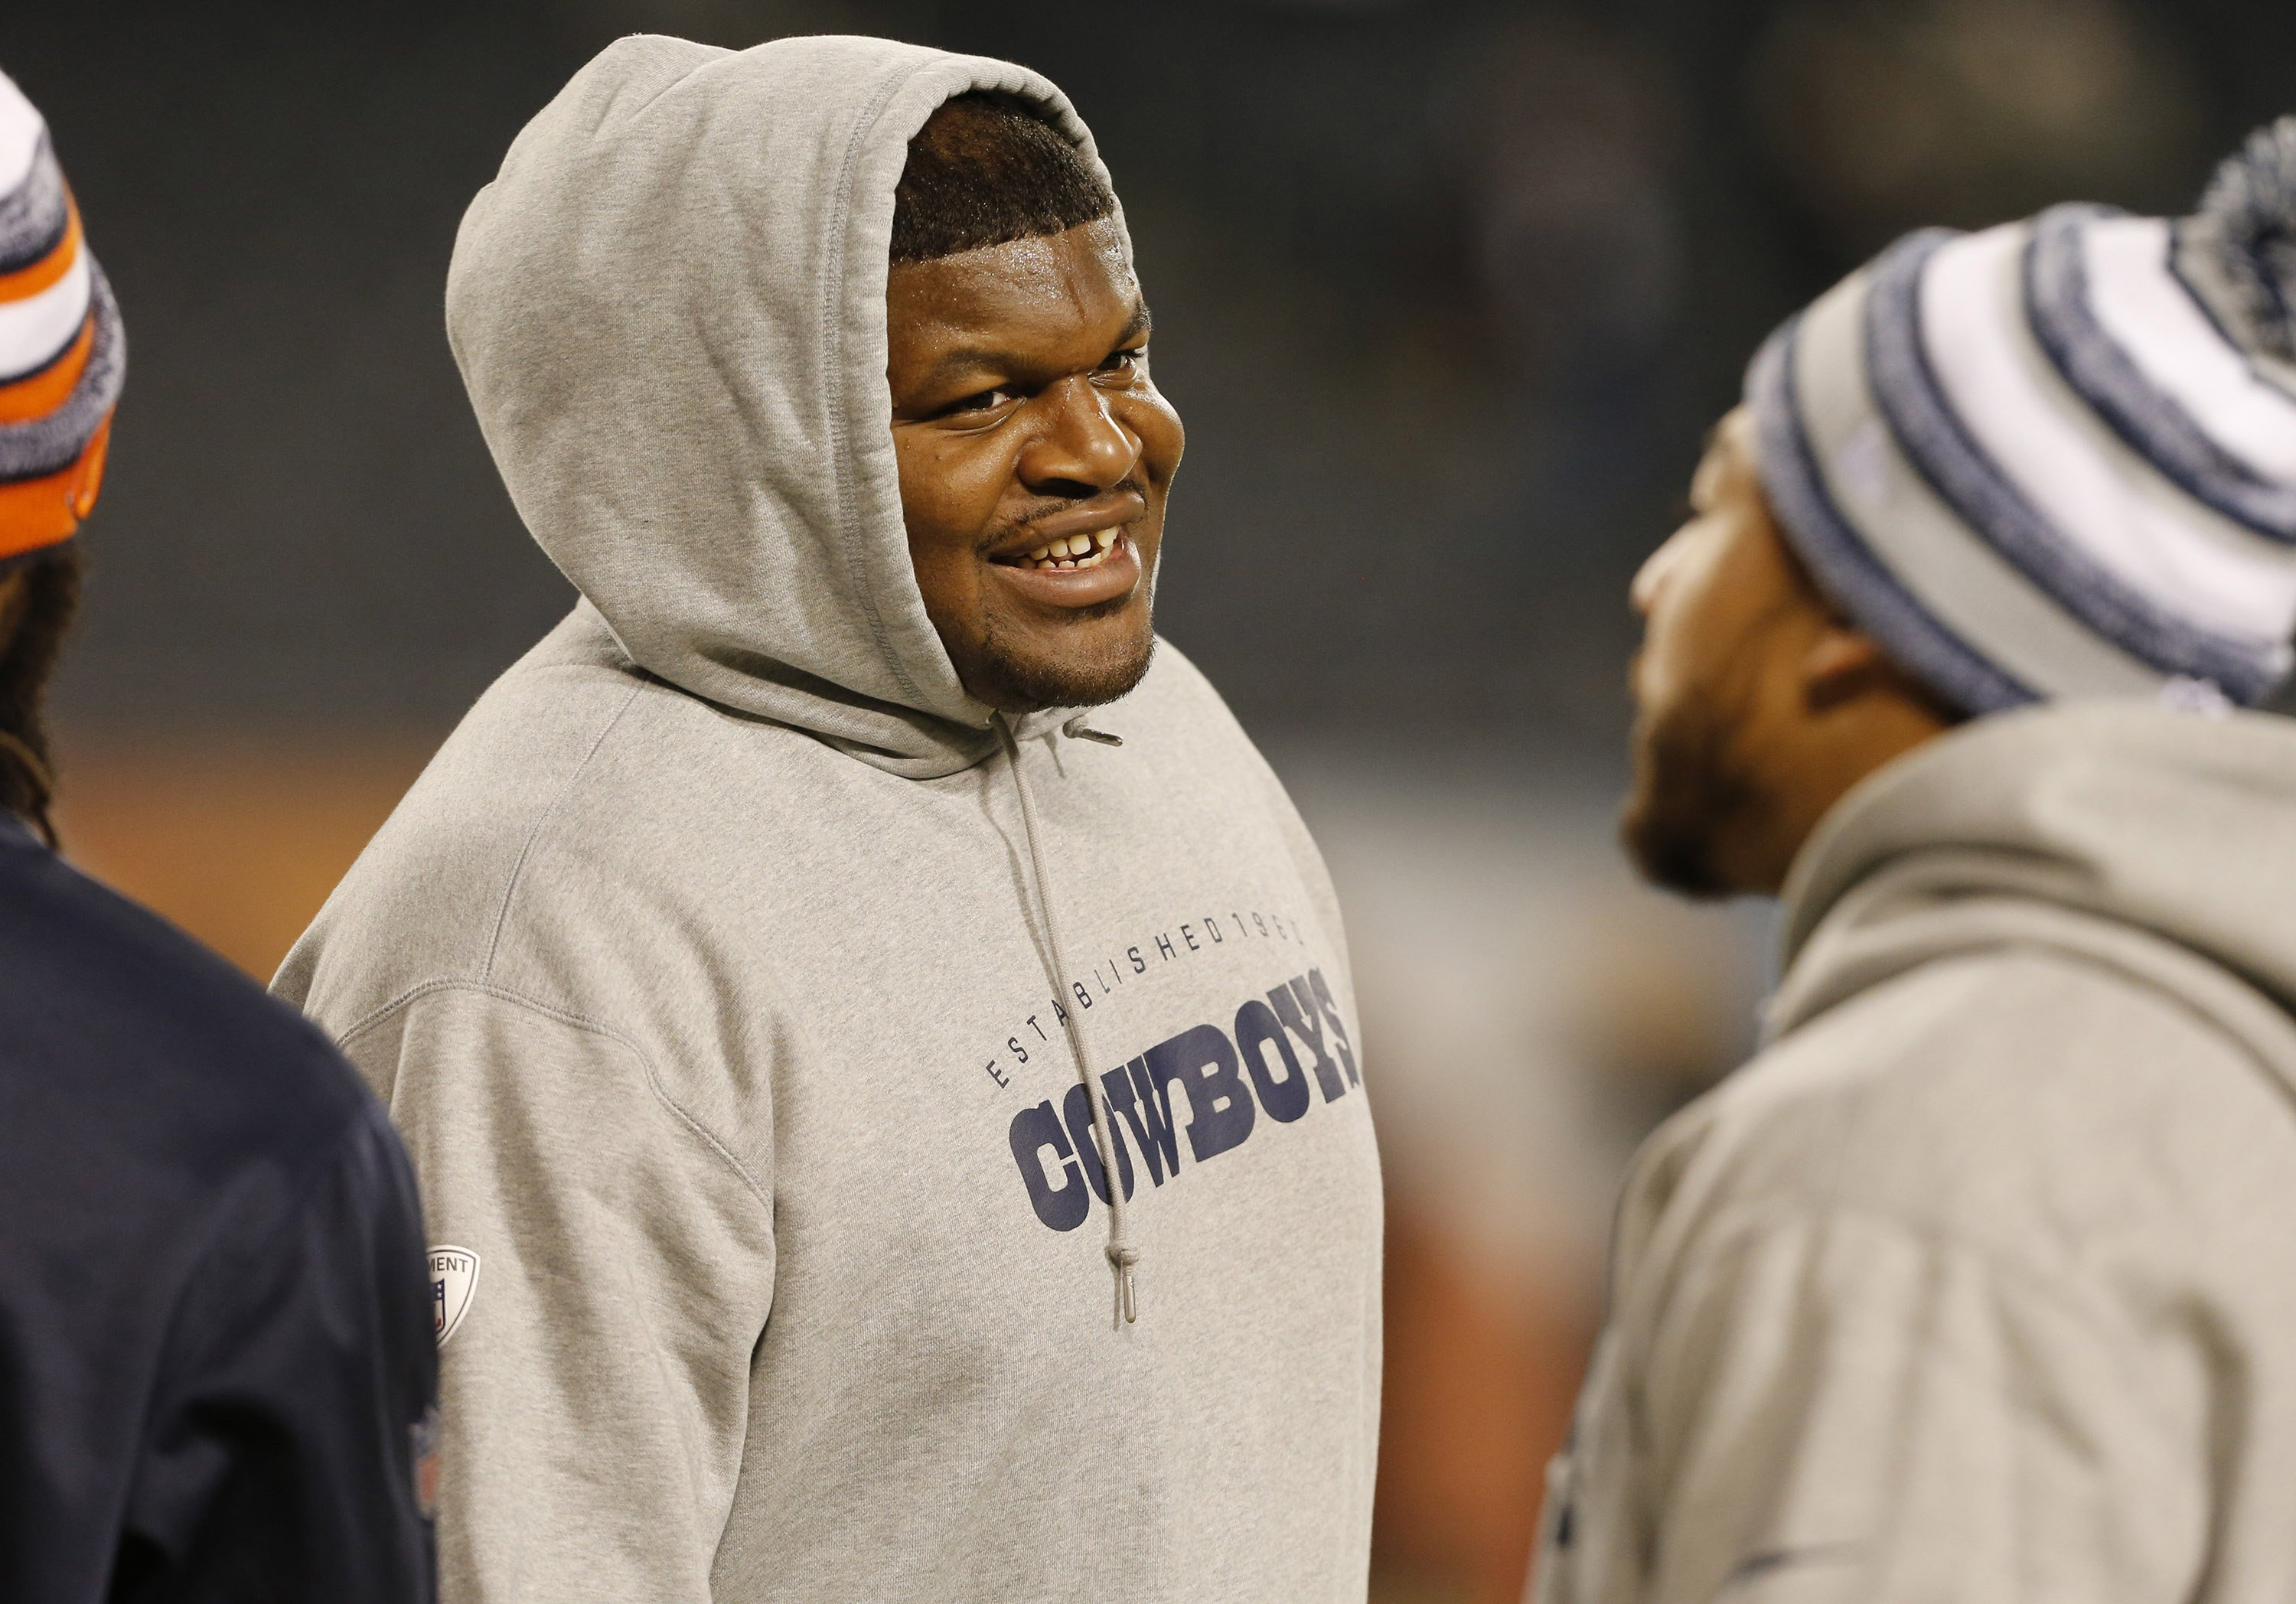 Josh Brent at Soldier Field in Chicago on Thursday, Dec. 4, 2014   Photo: Getty Images